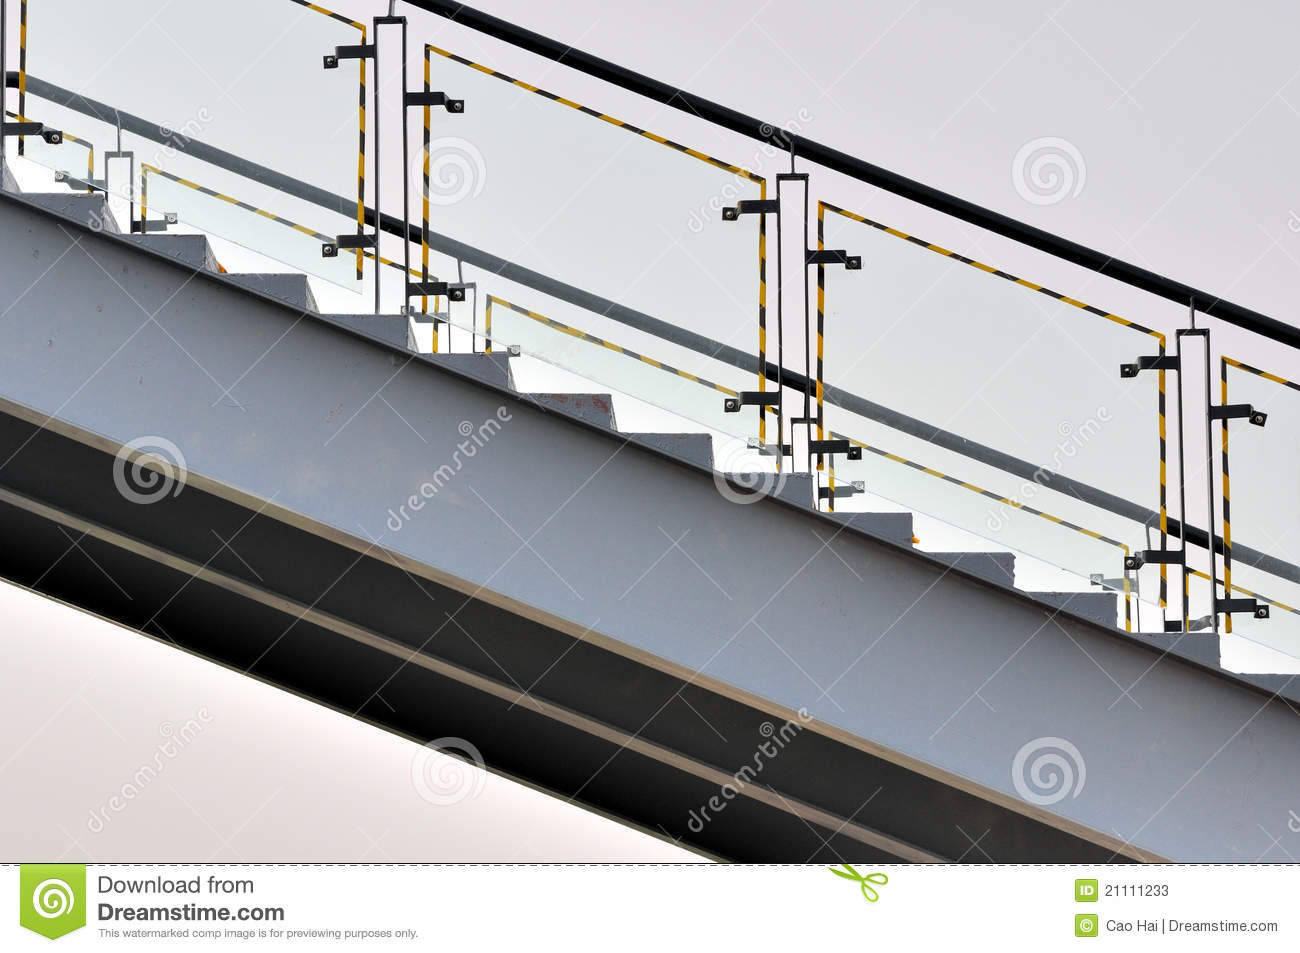 Metal stage composed by shape and line